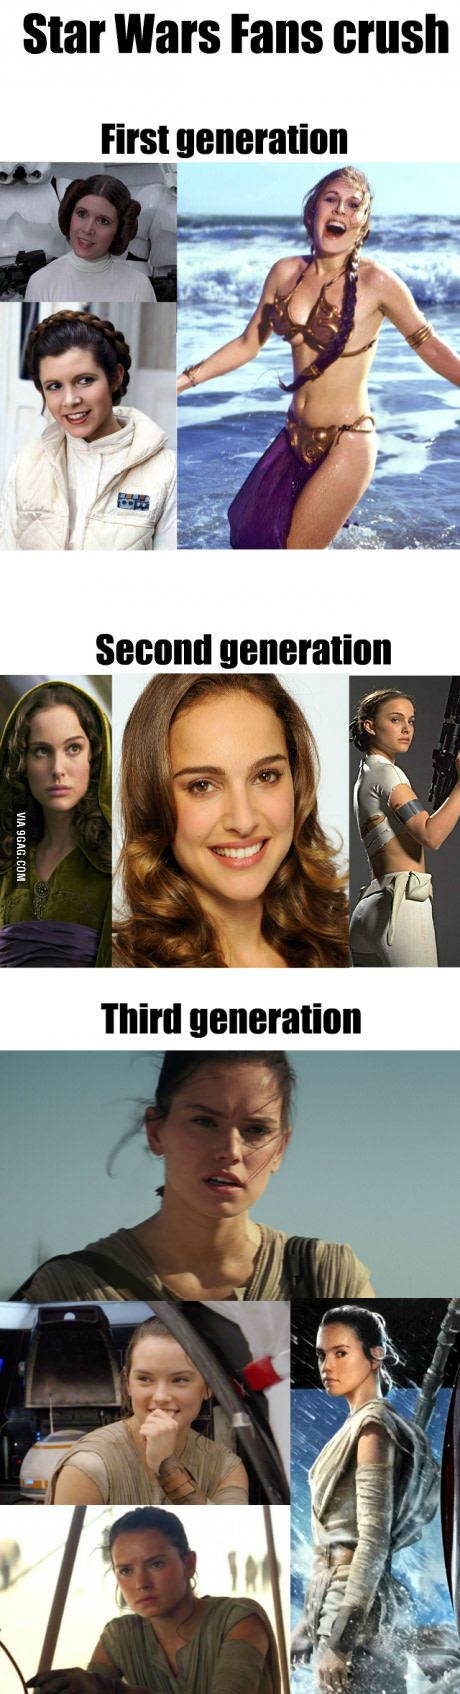 Yes Indeed!-Generation of Star Wars Fans